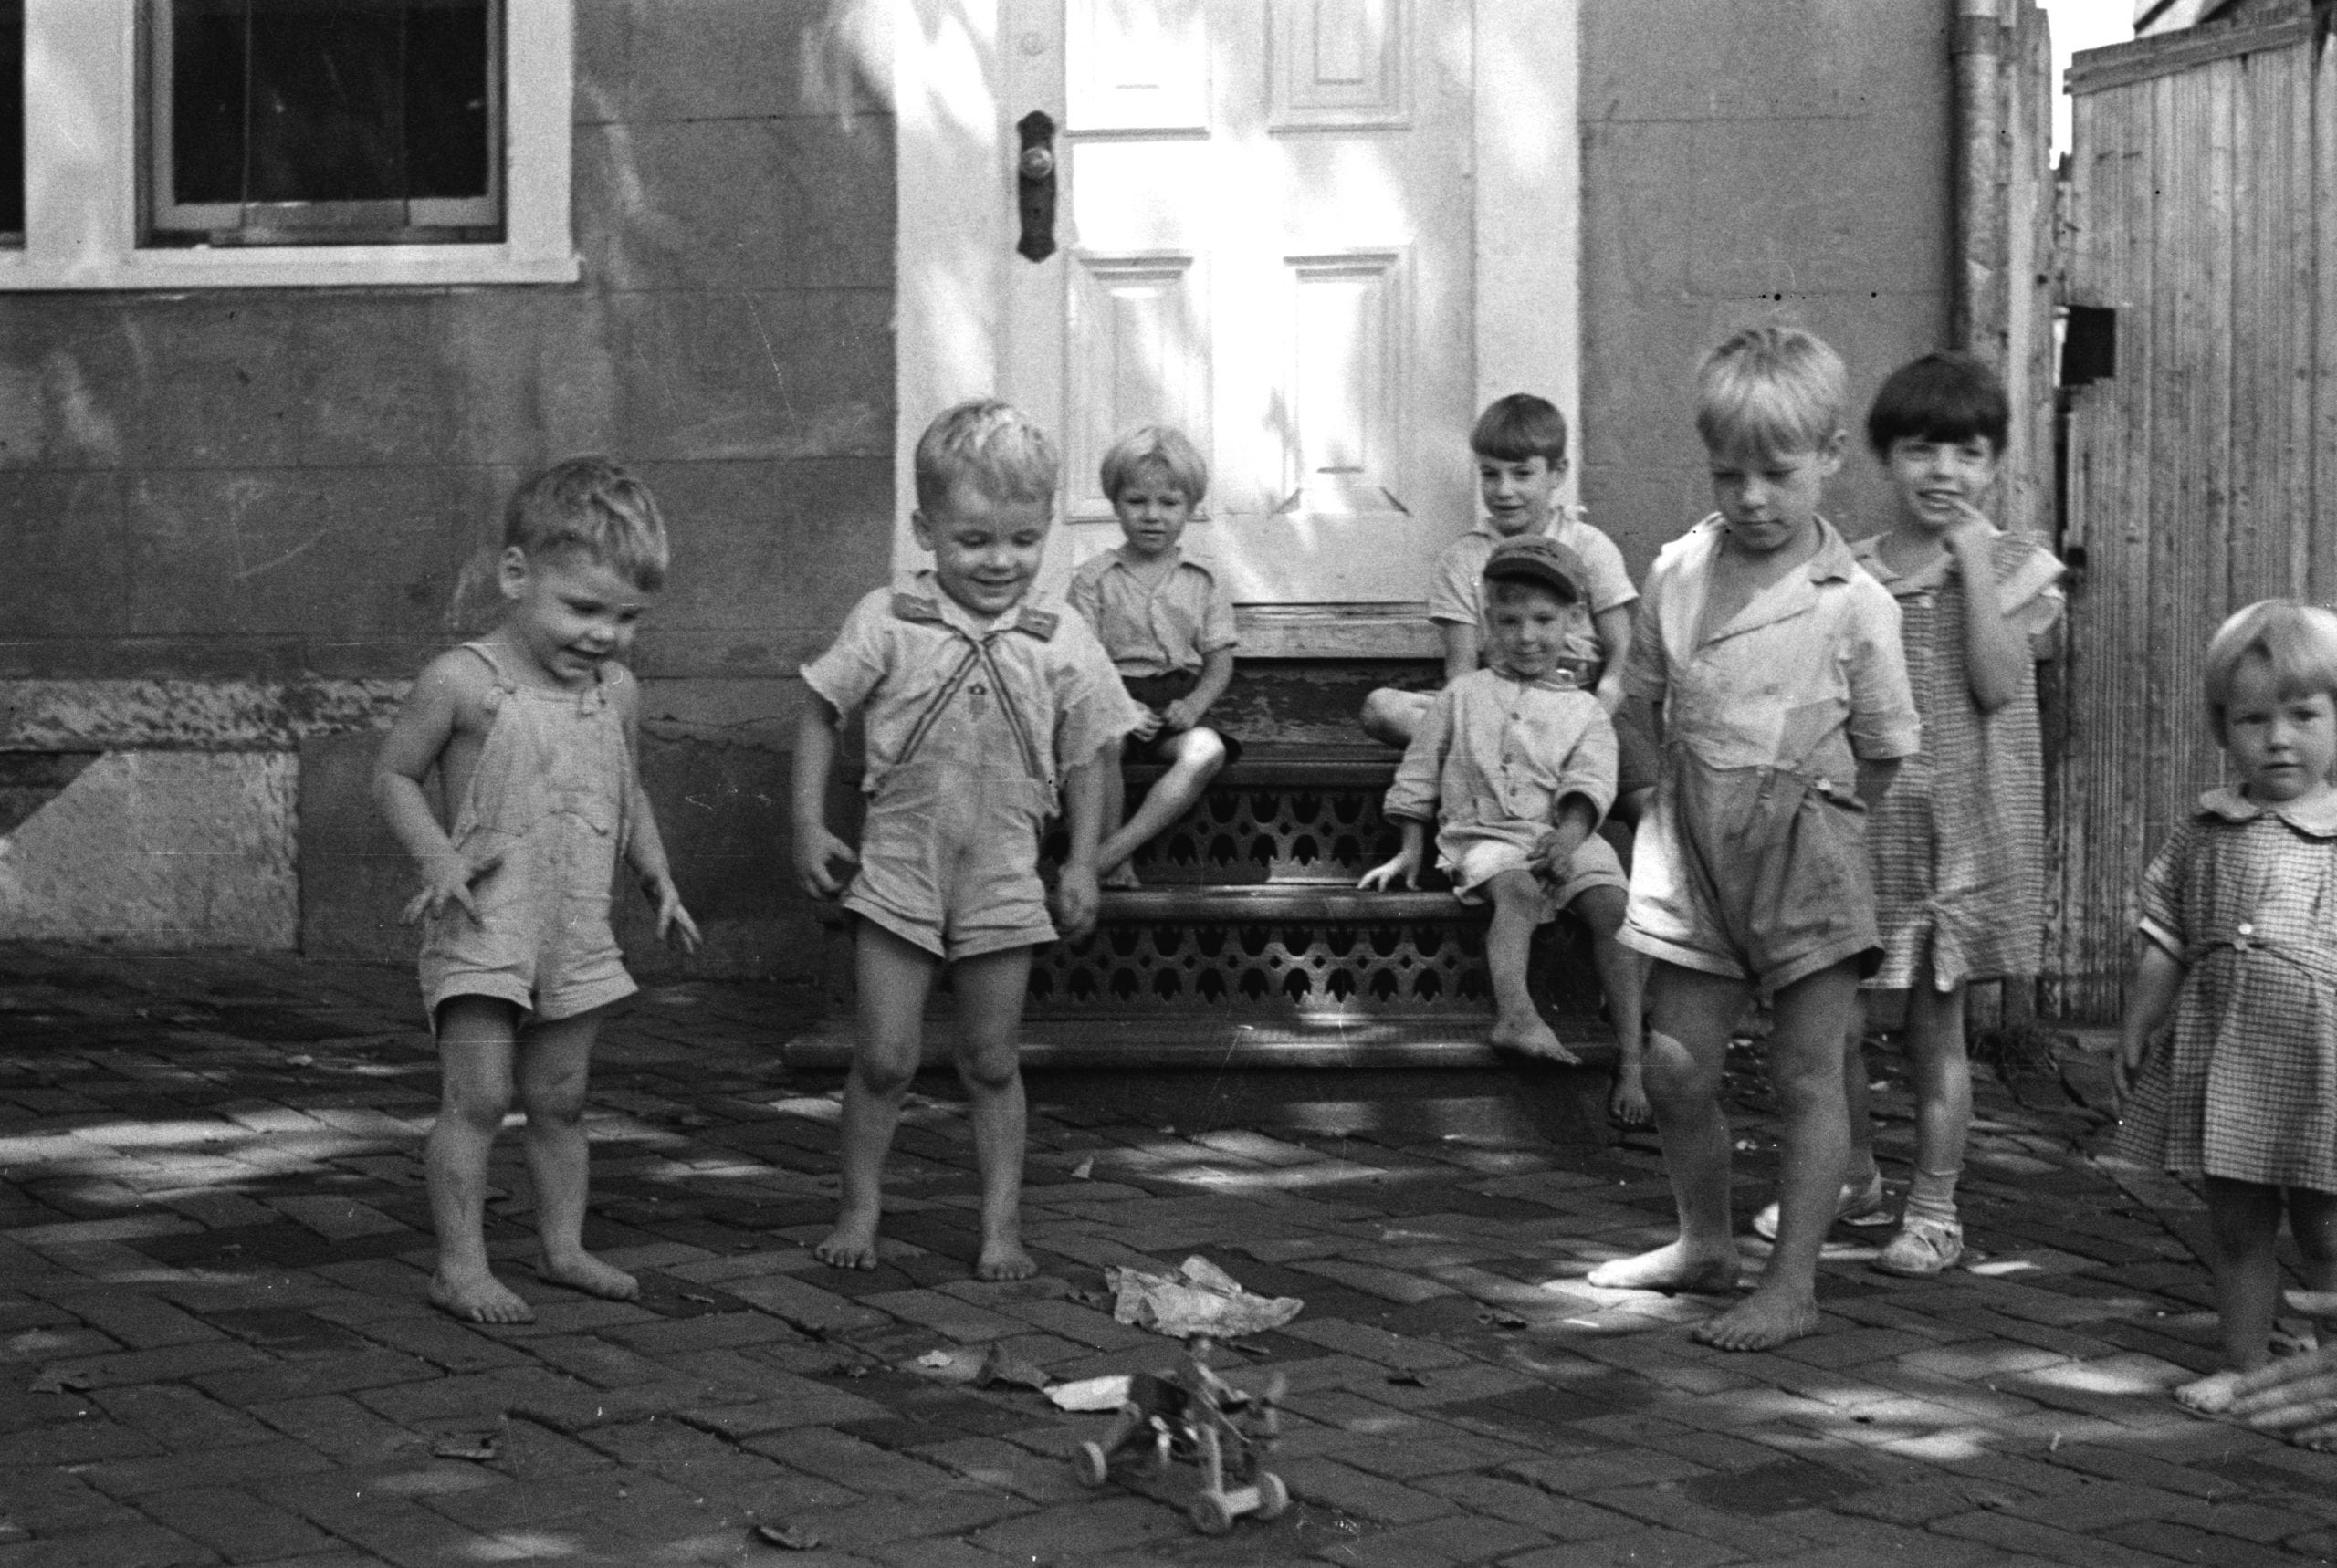 poor children in Georgetown, playing on the street (1935)